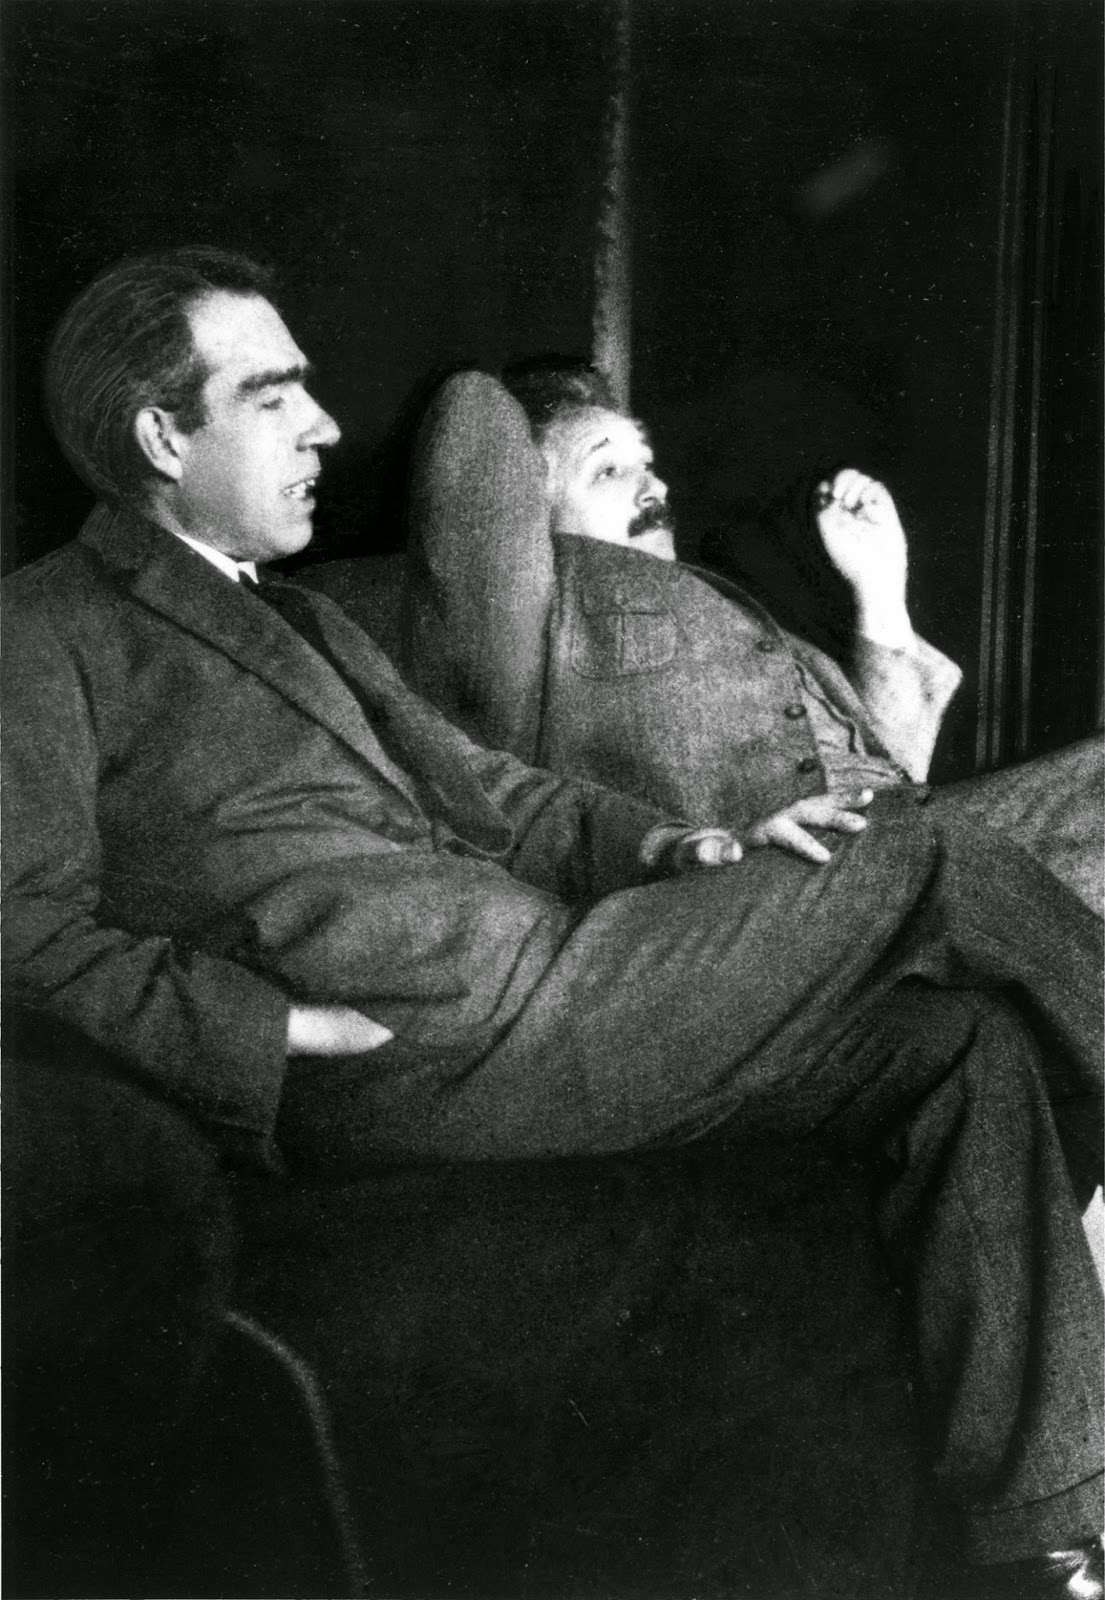 Ultimate Collection Of Rare Historical Photos. A Big Piece Of History (200 Pictures) - Niels Bohr and Albert Einstein